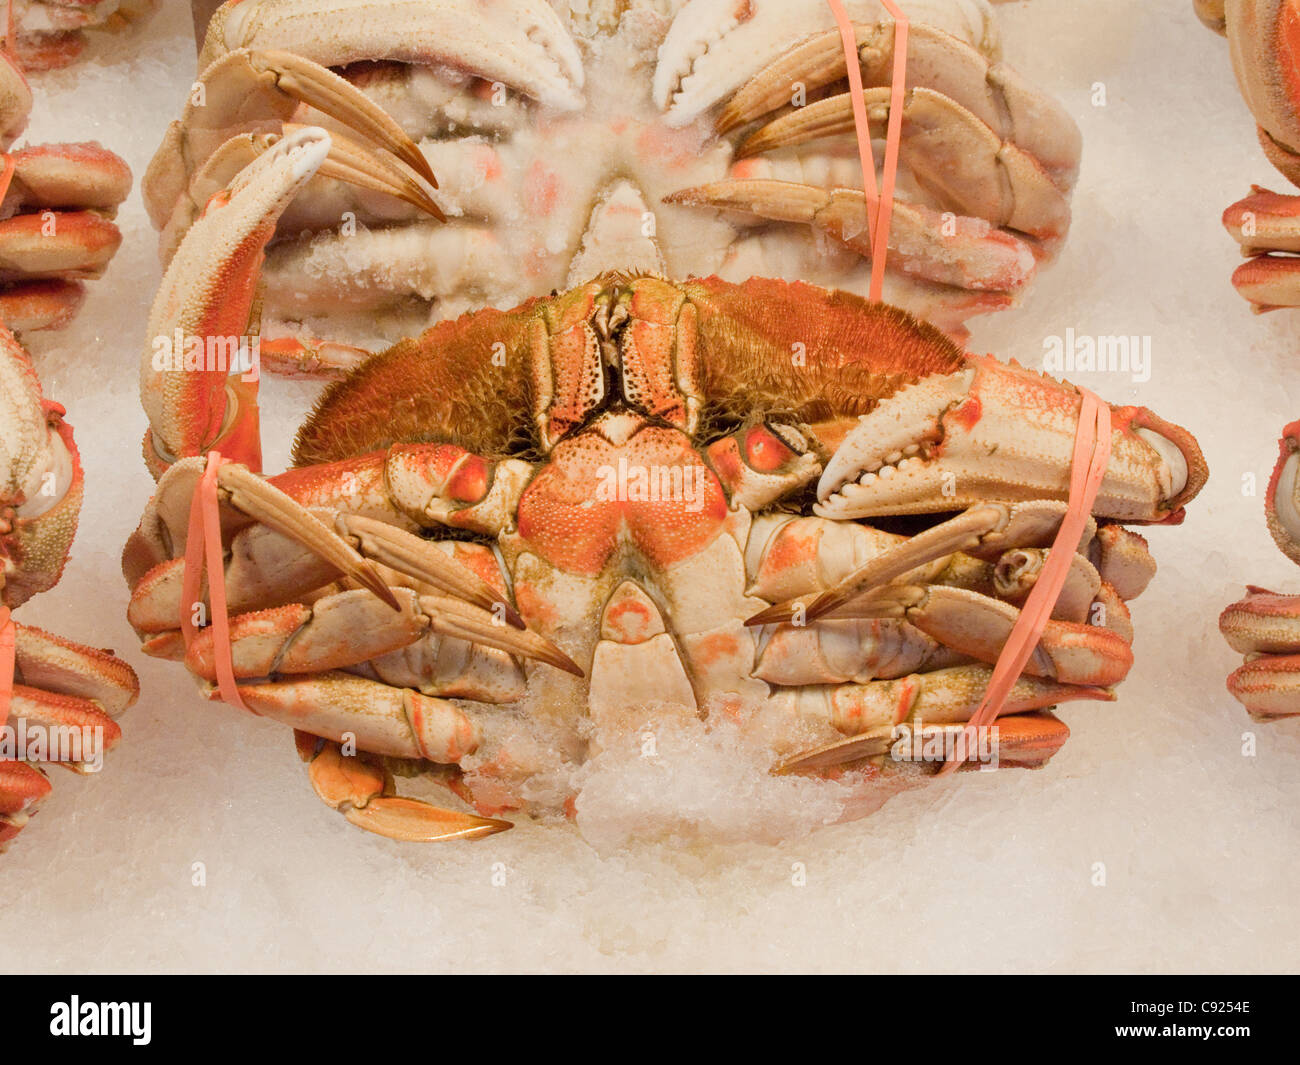 Close up of a whole, cooked Dungeness Crab displayed on ice